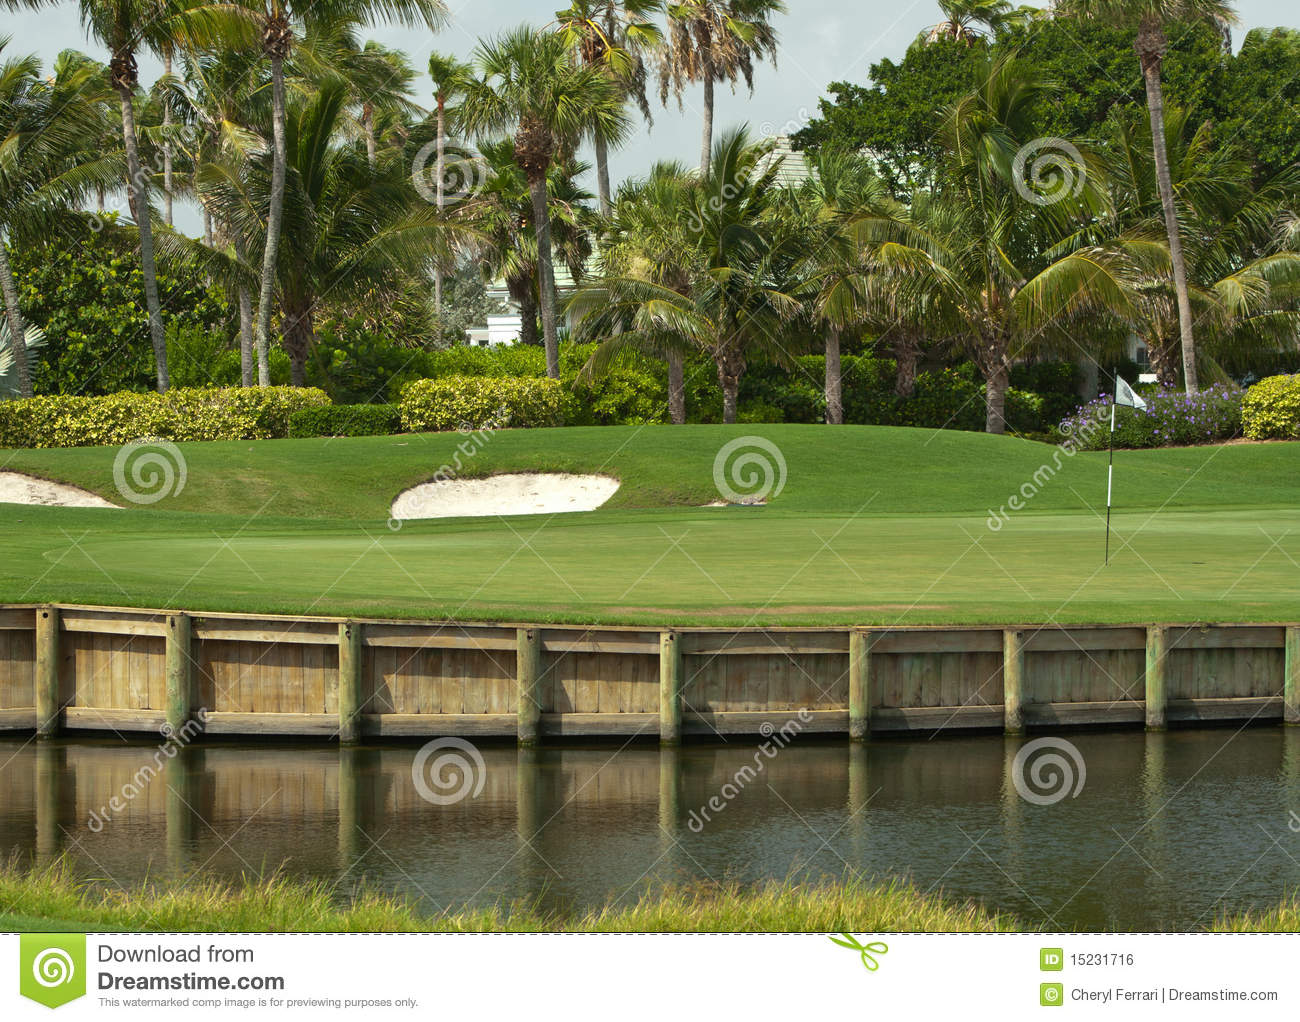 Download Golf Course Green In Florida 2 Stock Photo - Image of beautiful, exclusive: 15231716